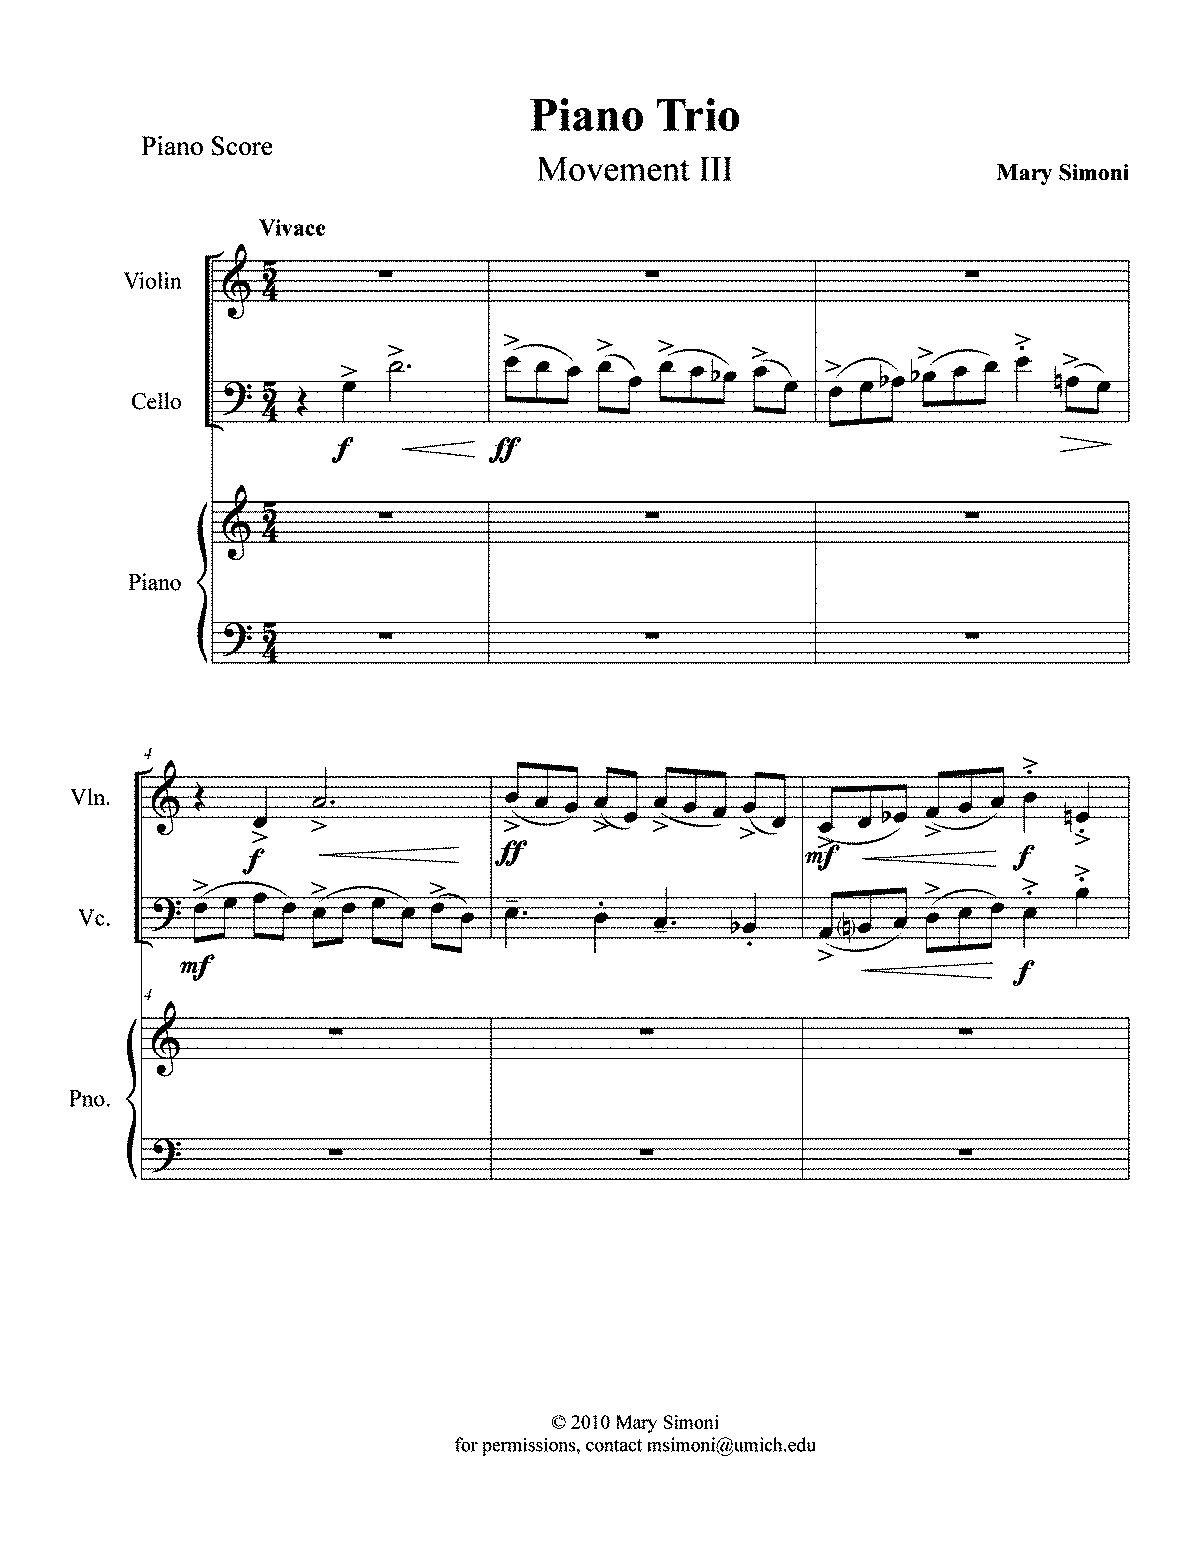 PMLP232569-PianoTrio ThirdMovement-FullScore.pdf